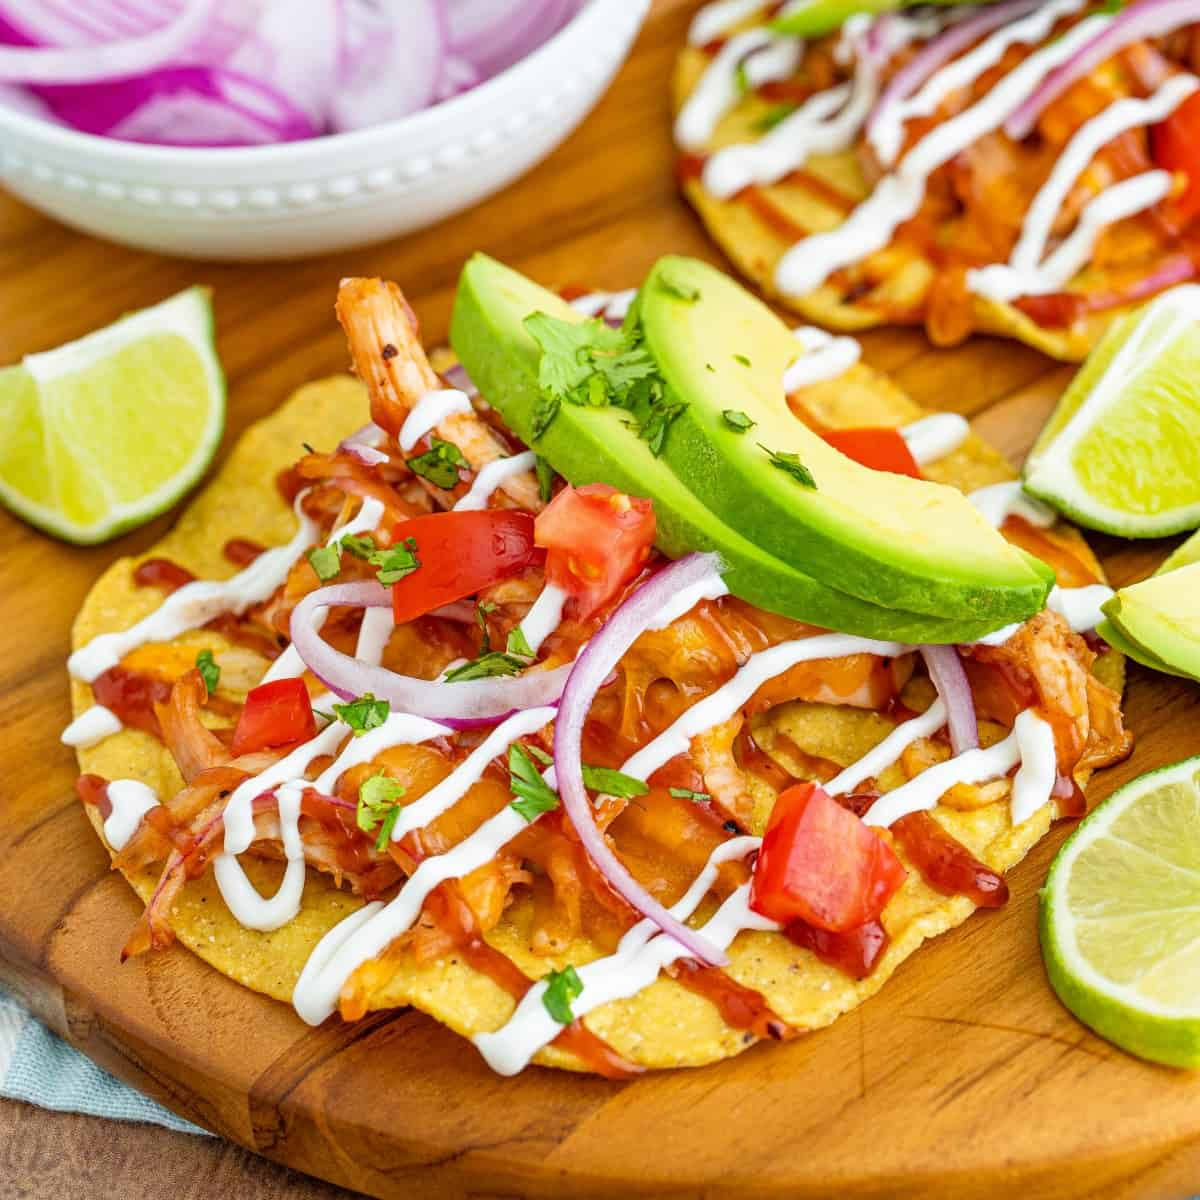 Square photo of a tostada ready to eat